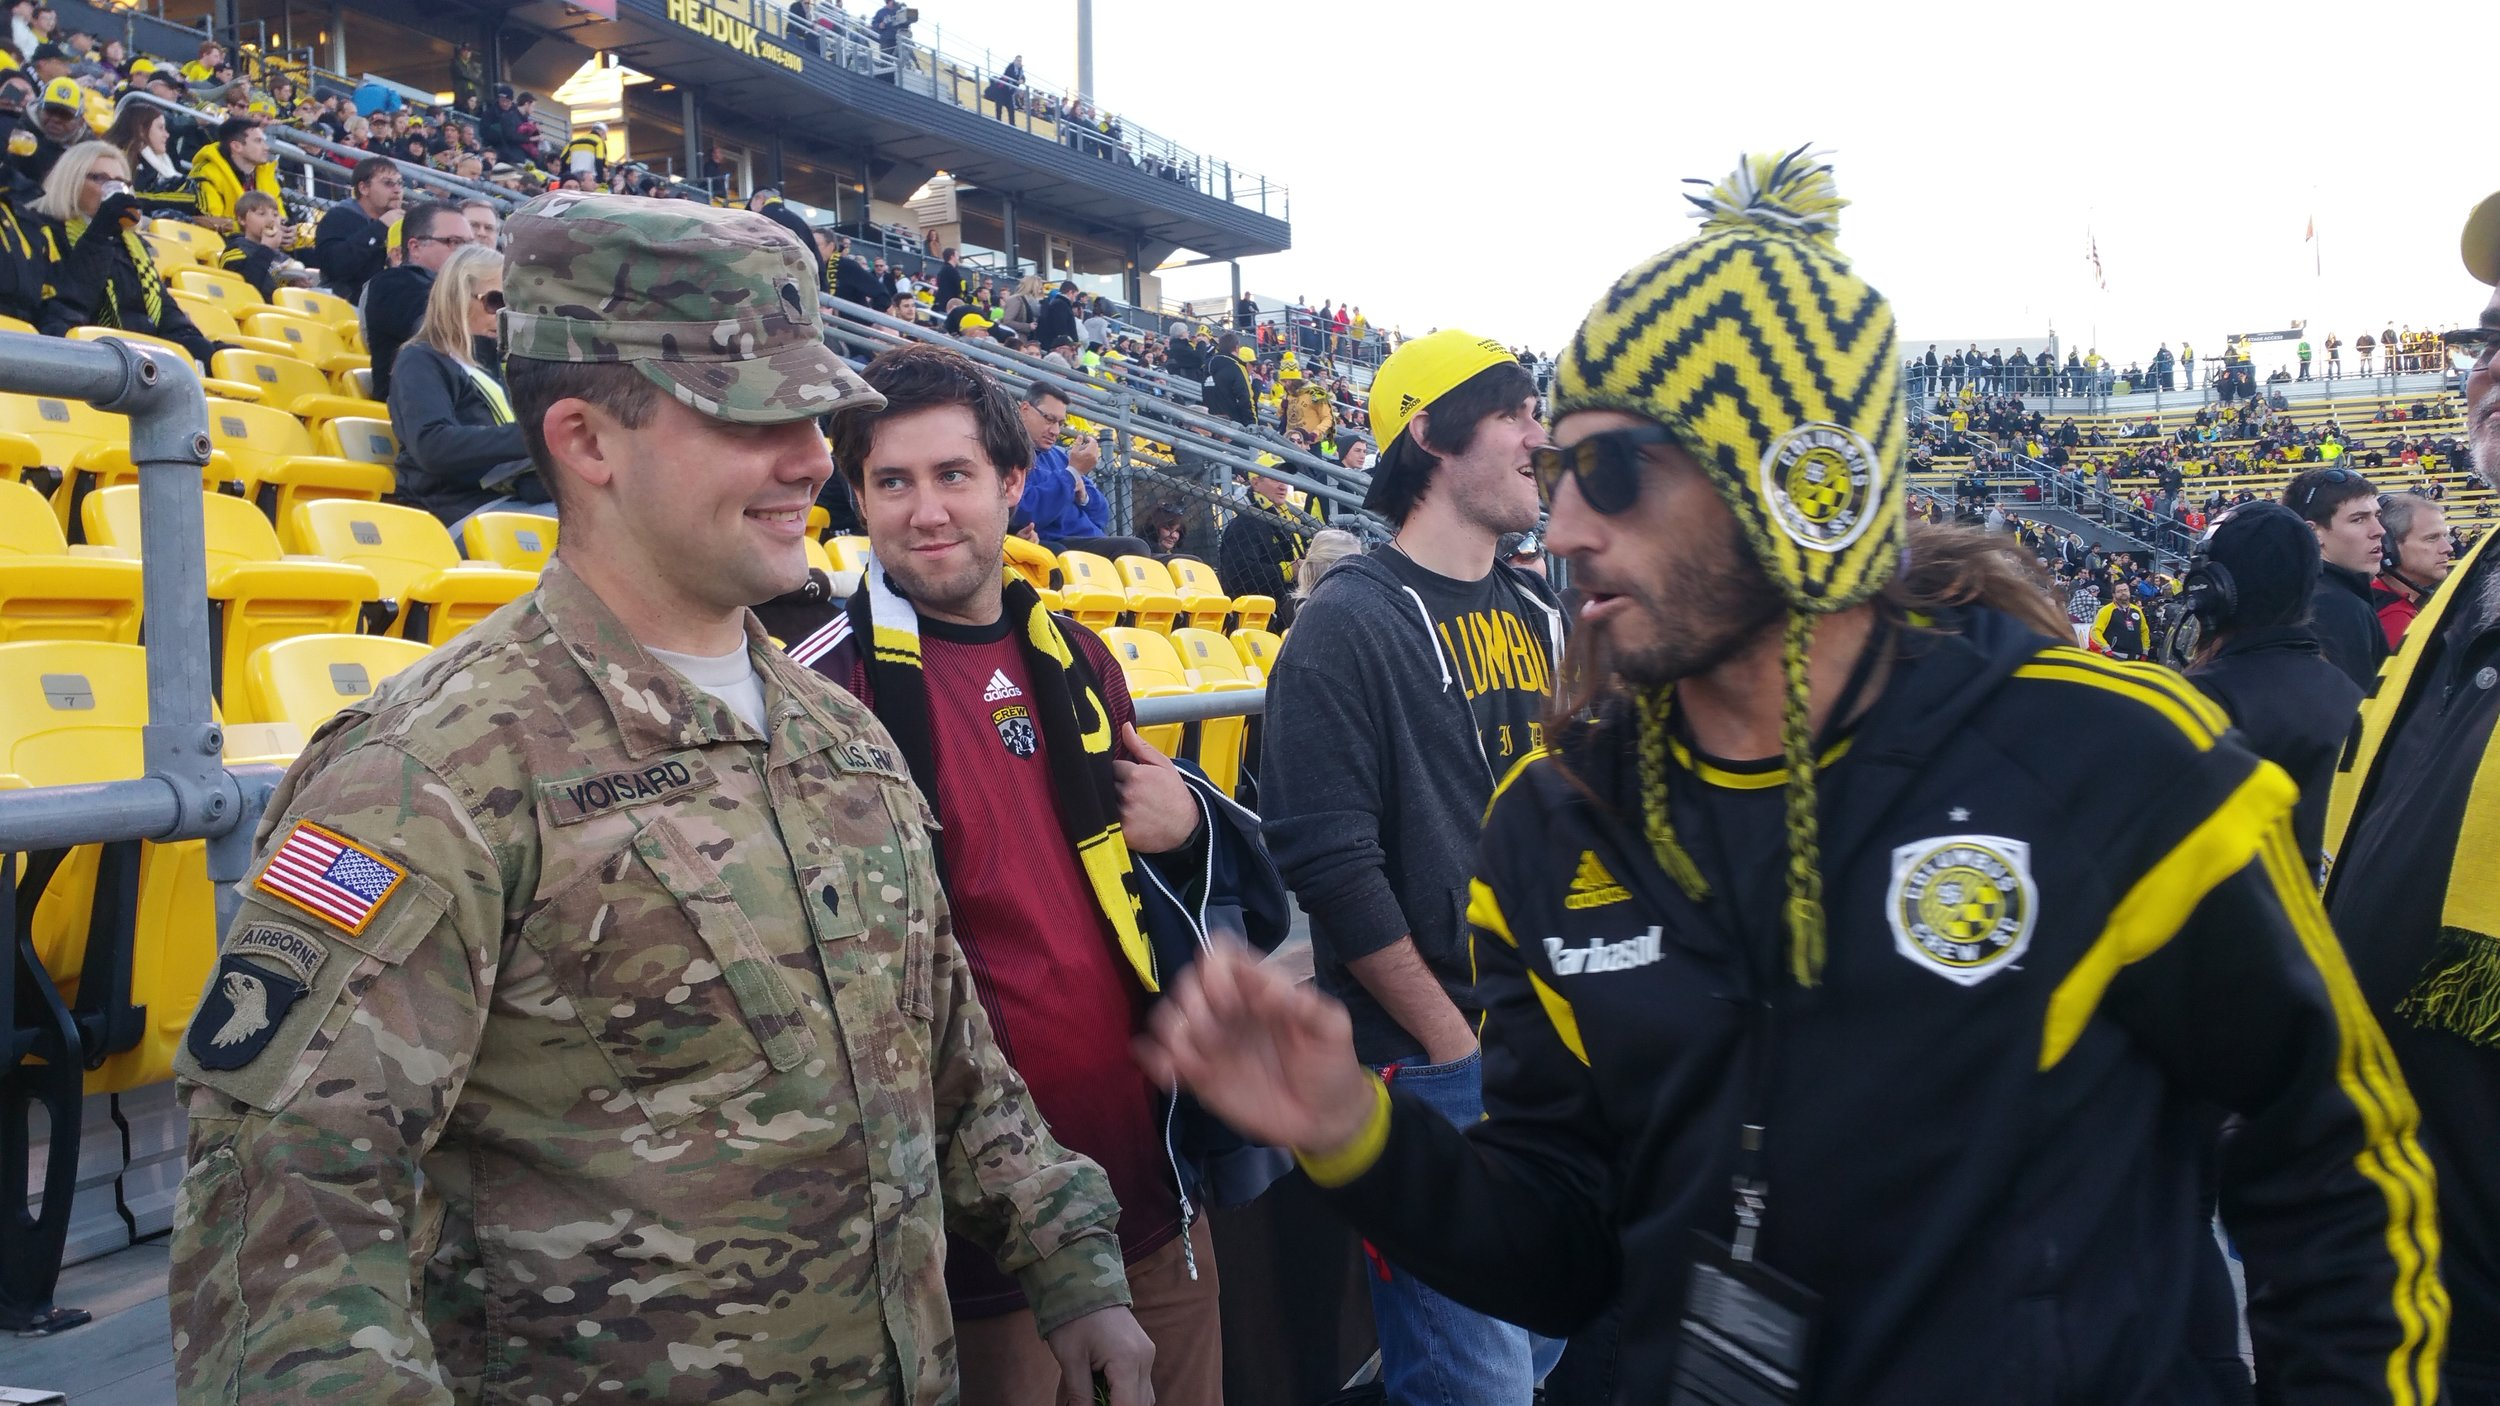 Alex before the match with Crew legend Frankie Hejduk.